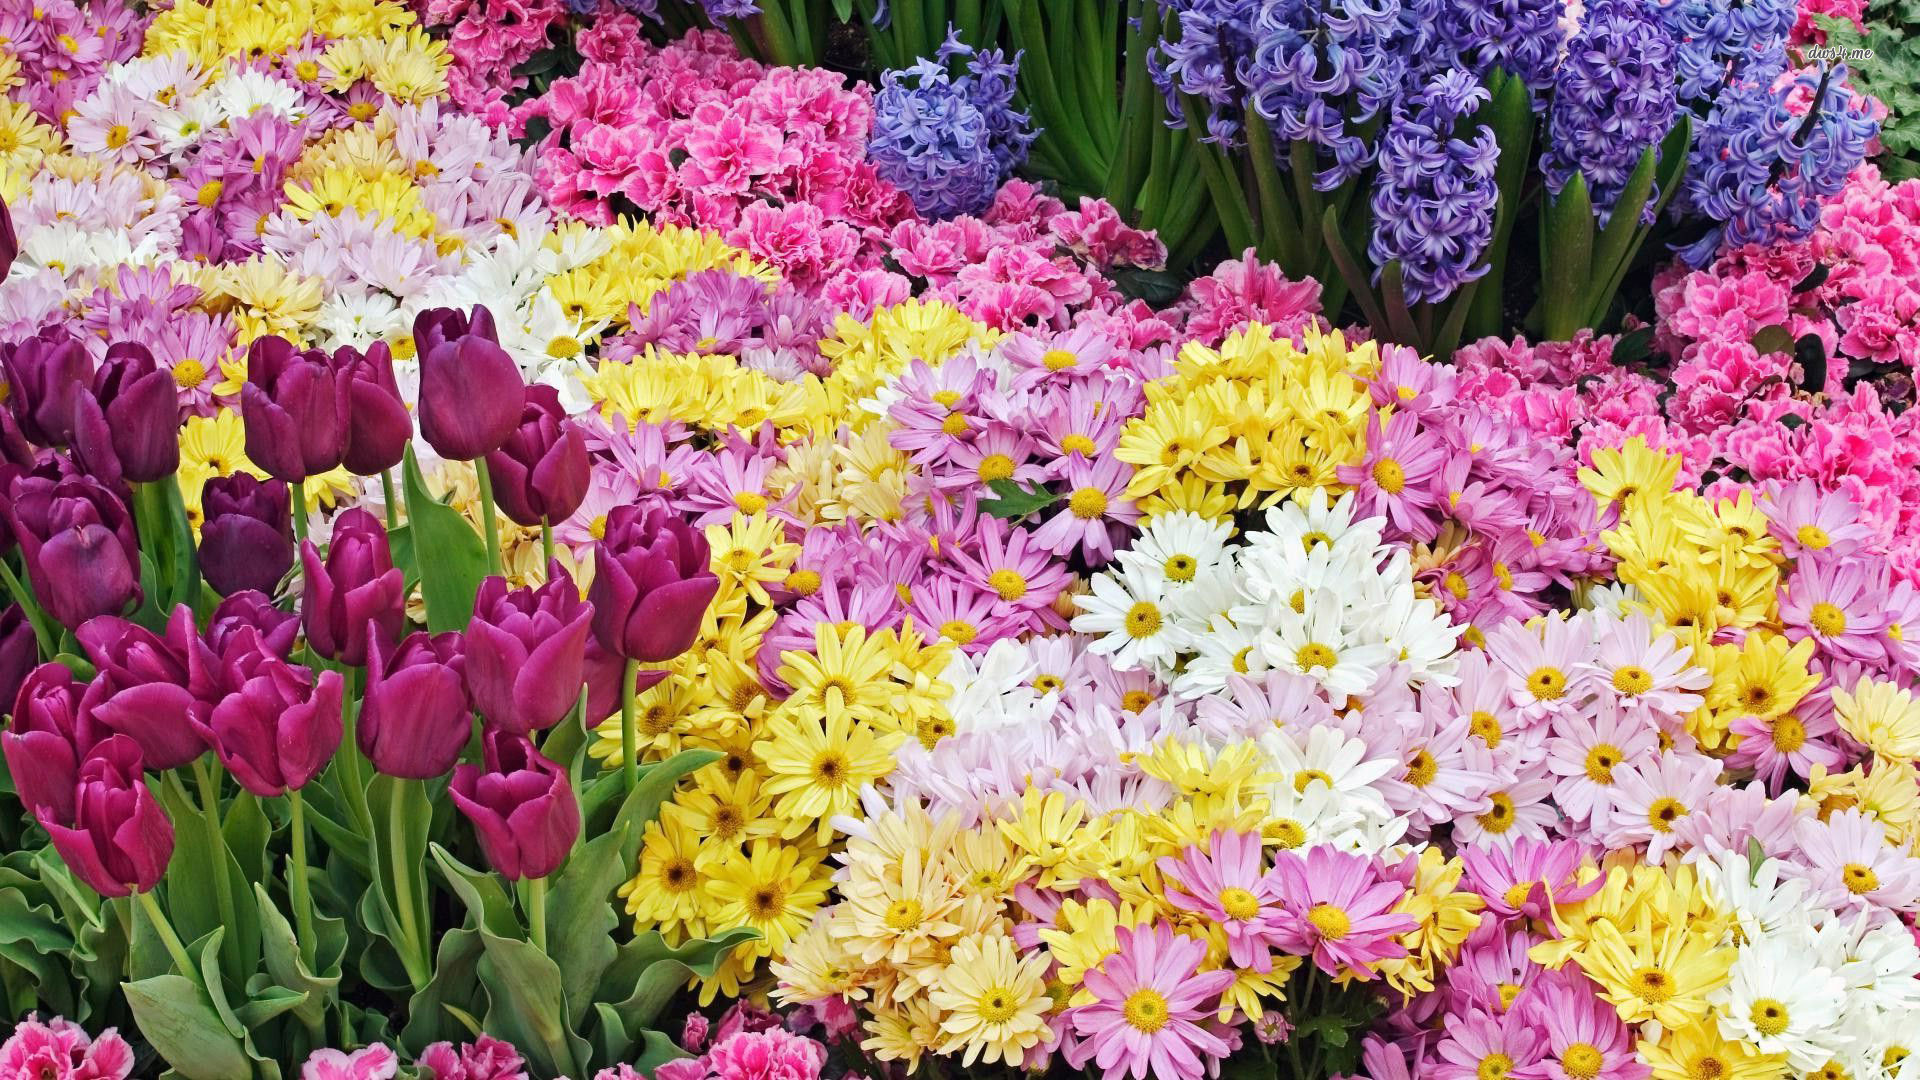 1920x1080 8. spring-flowers-desktop-wallpaper8-600x338